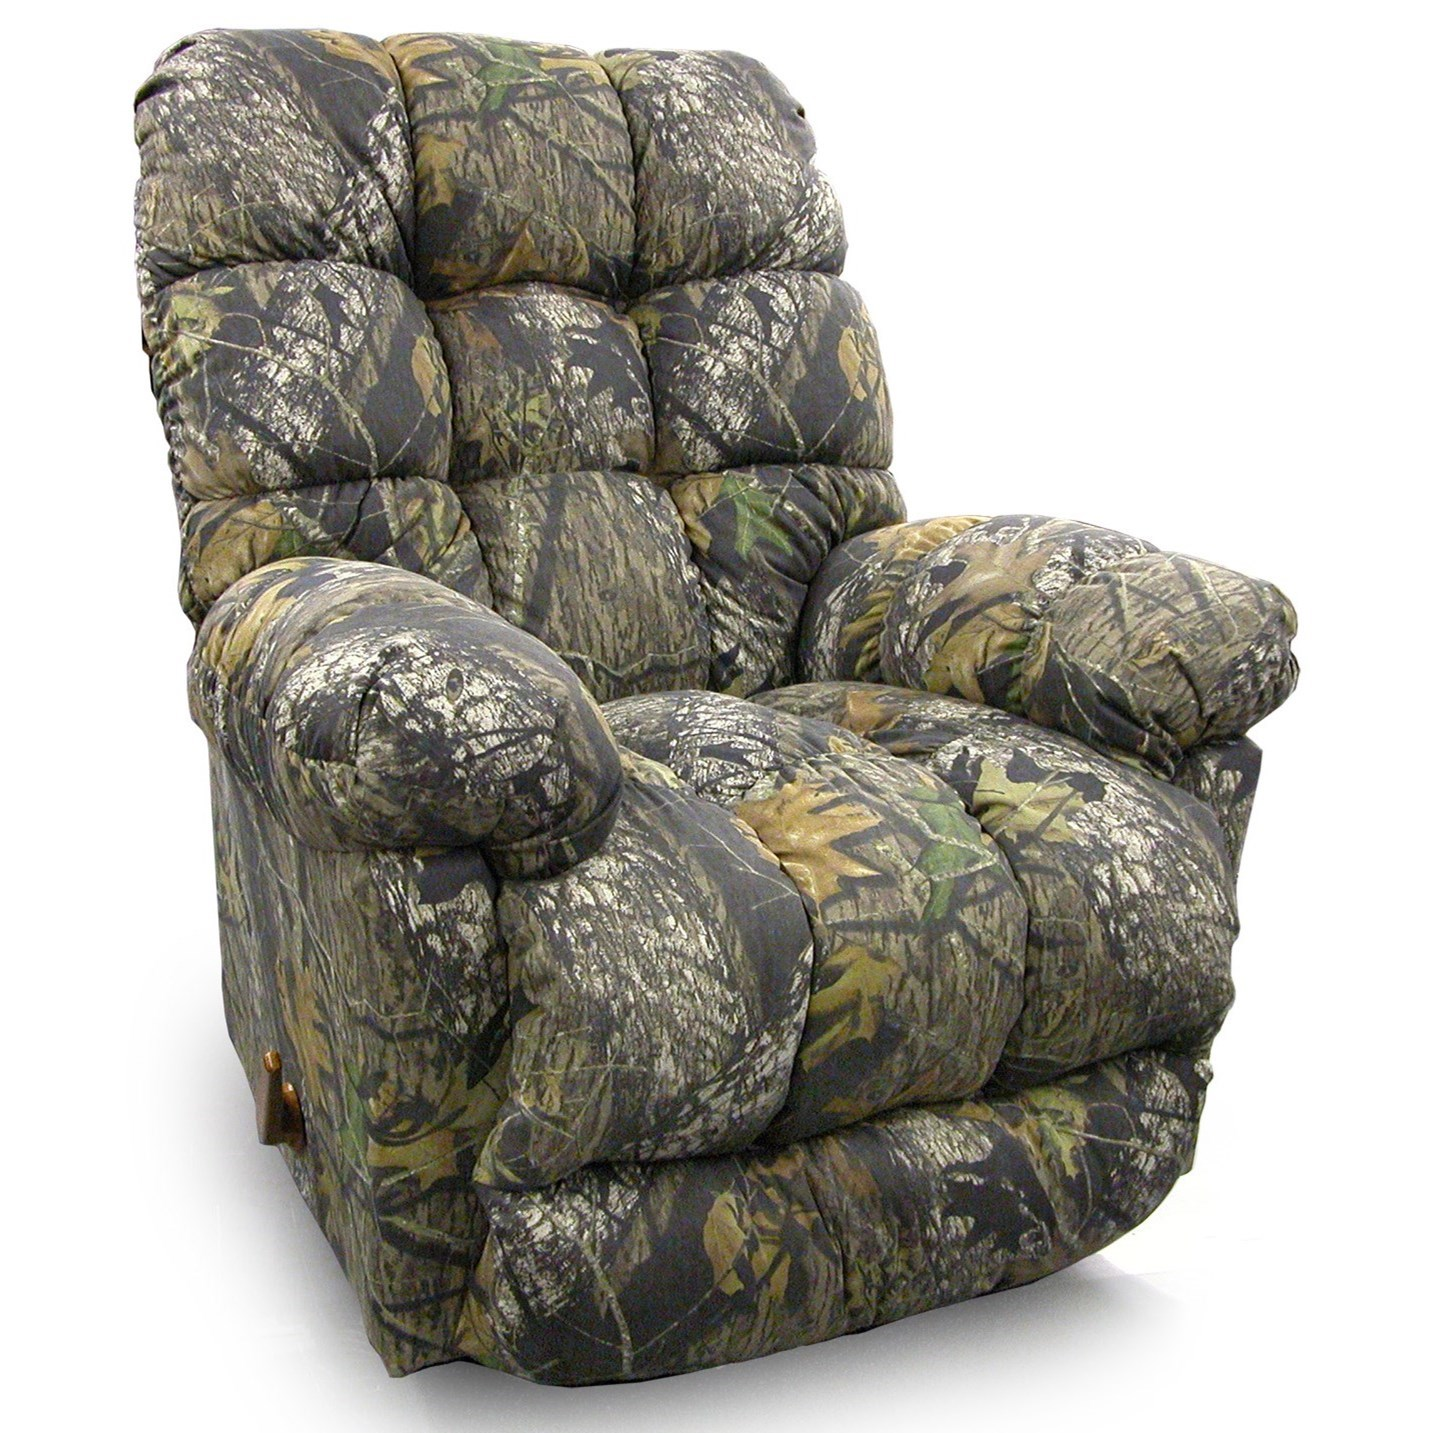 Medium Recliners Brosmer Power Lift Recliner by Best Home Furnishings at Baer's Furniture